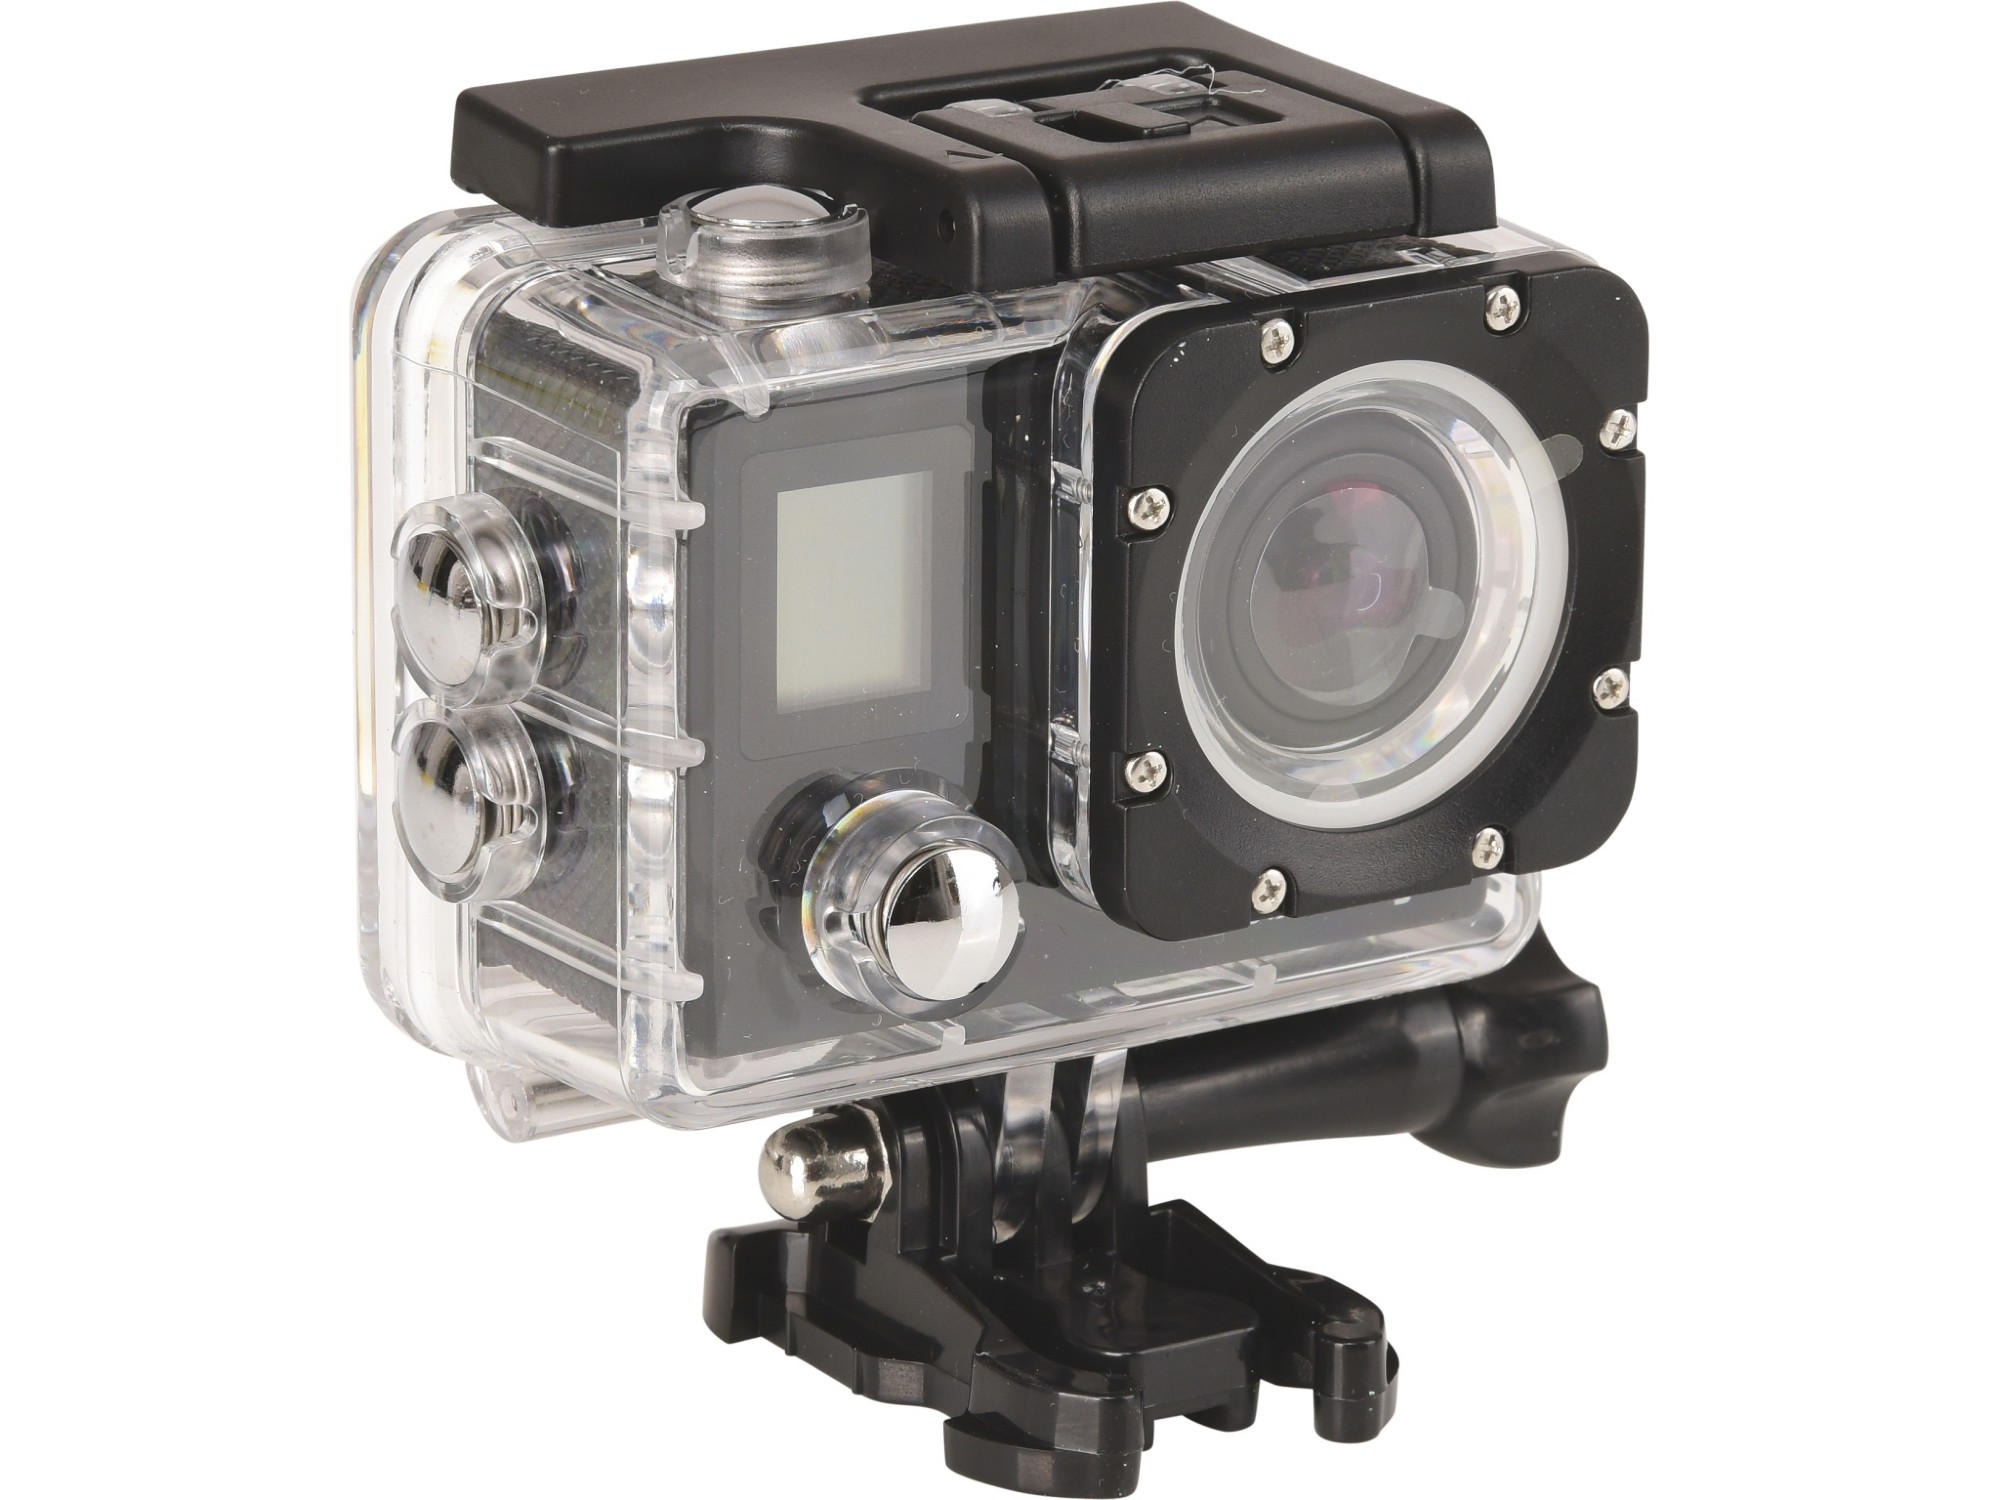 SANDBERG 430-00 ACTIONCAM 4K WATERPROOF + WIFI